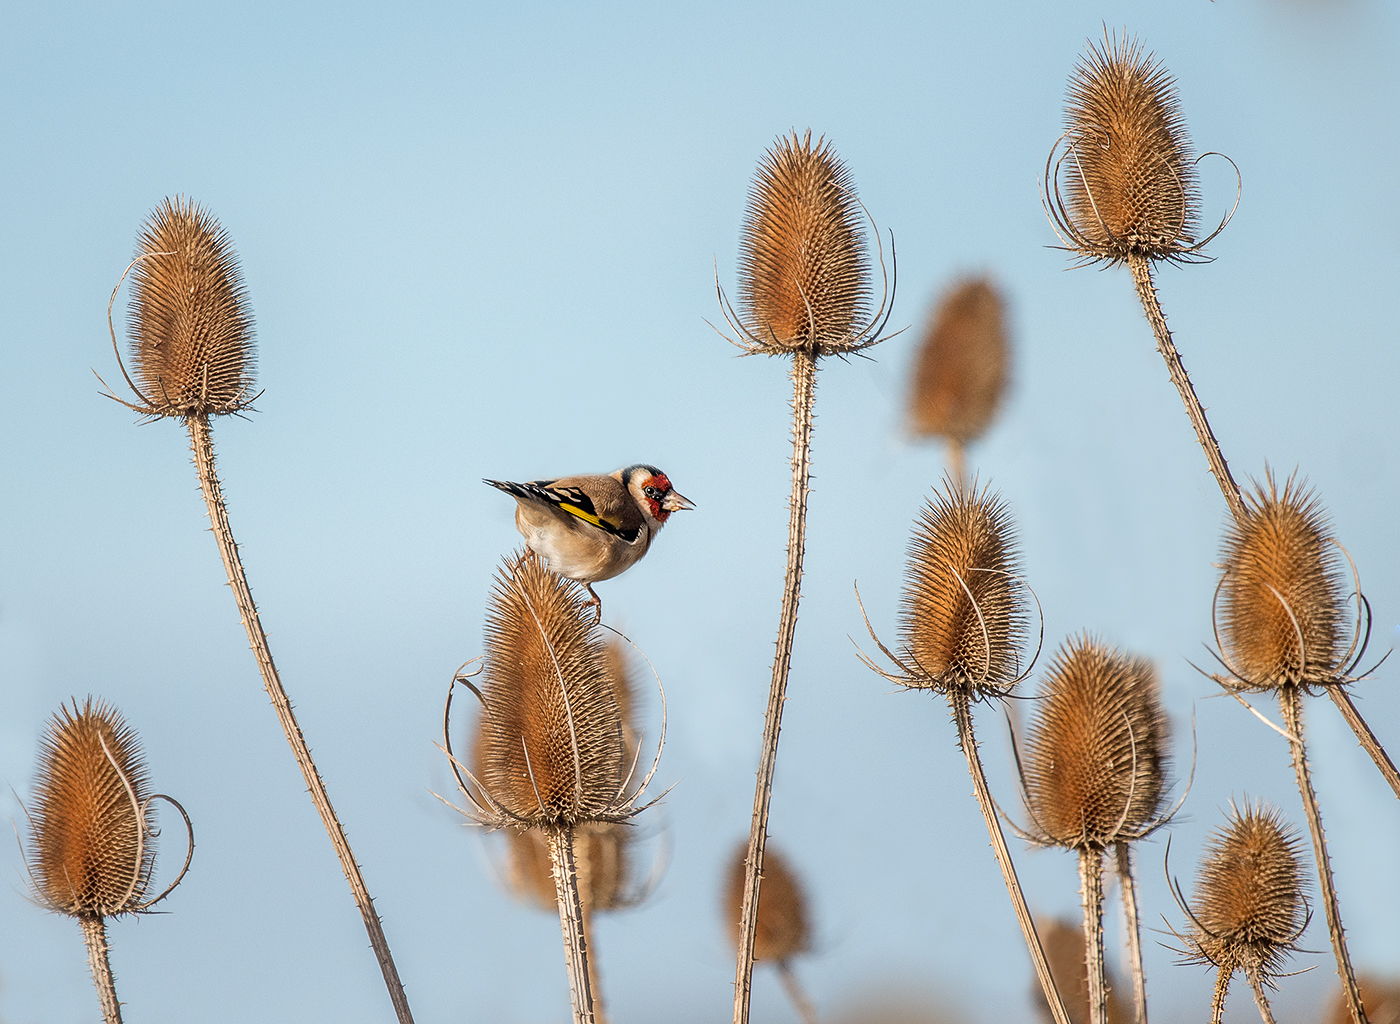 'Goldfinch Heaven' by Mark Cooper